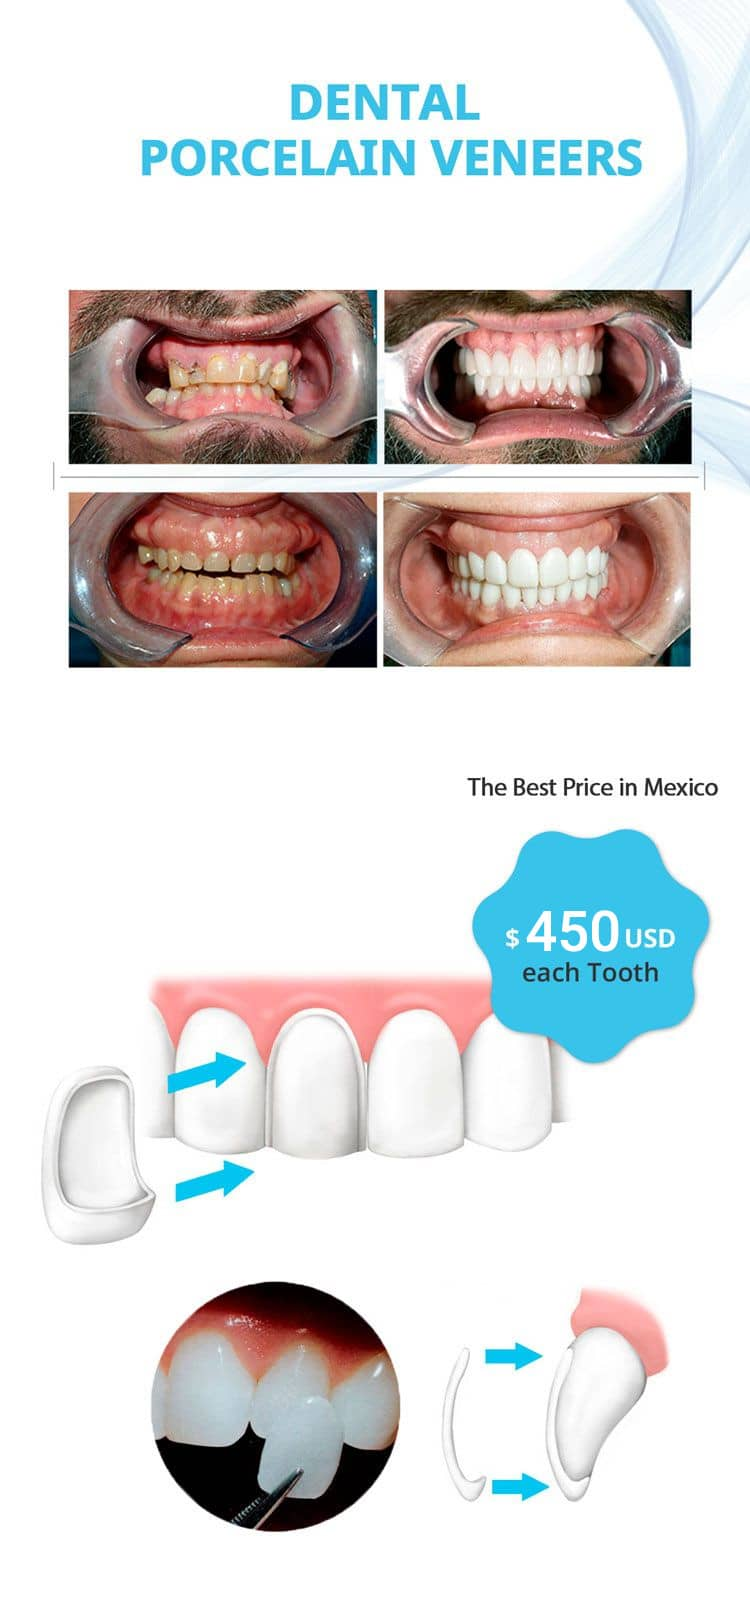 e.max Porcelain Veneers in Mexico